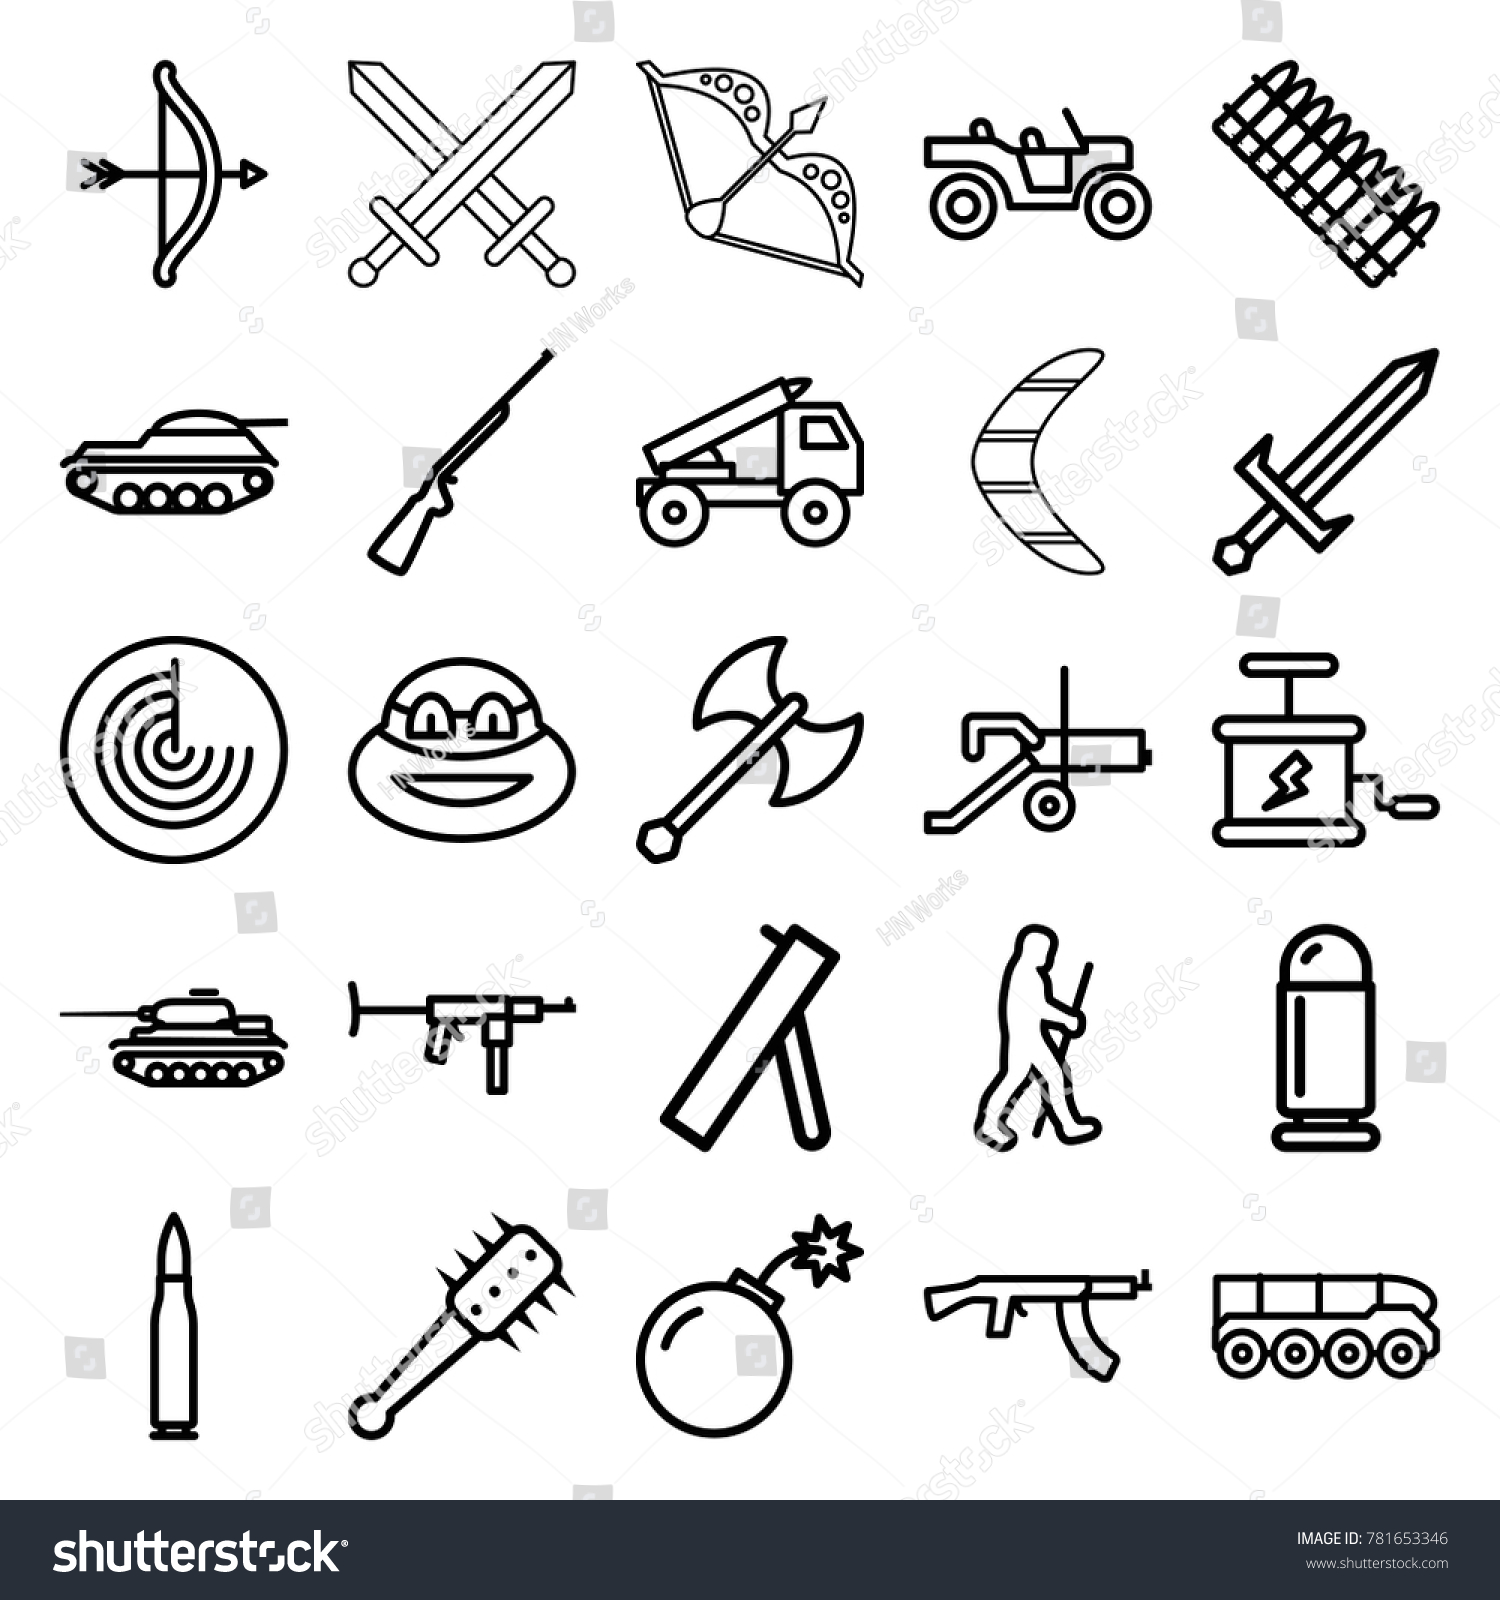 Weapon icons. set of 25 editable outline weapon icons such as radar, ninja,